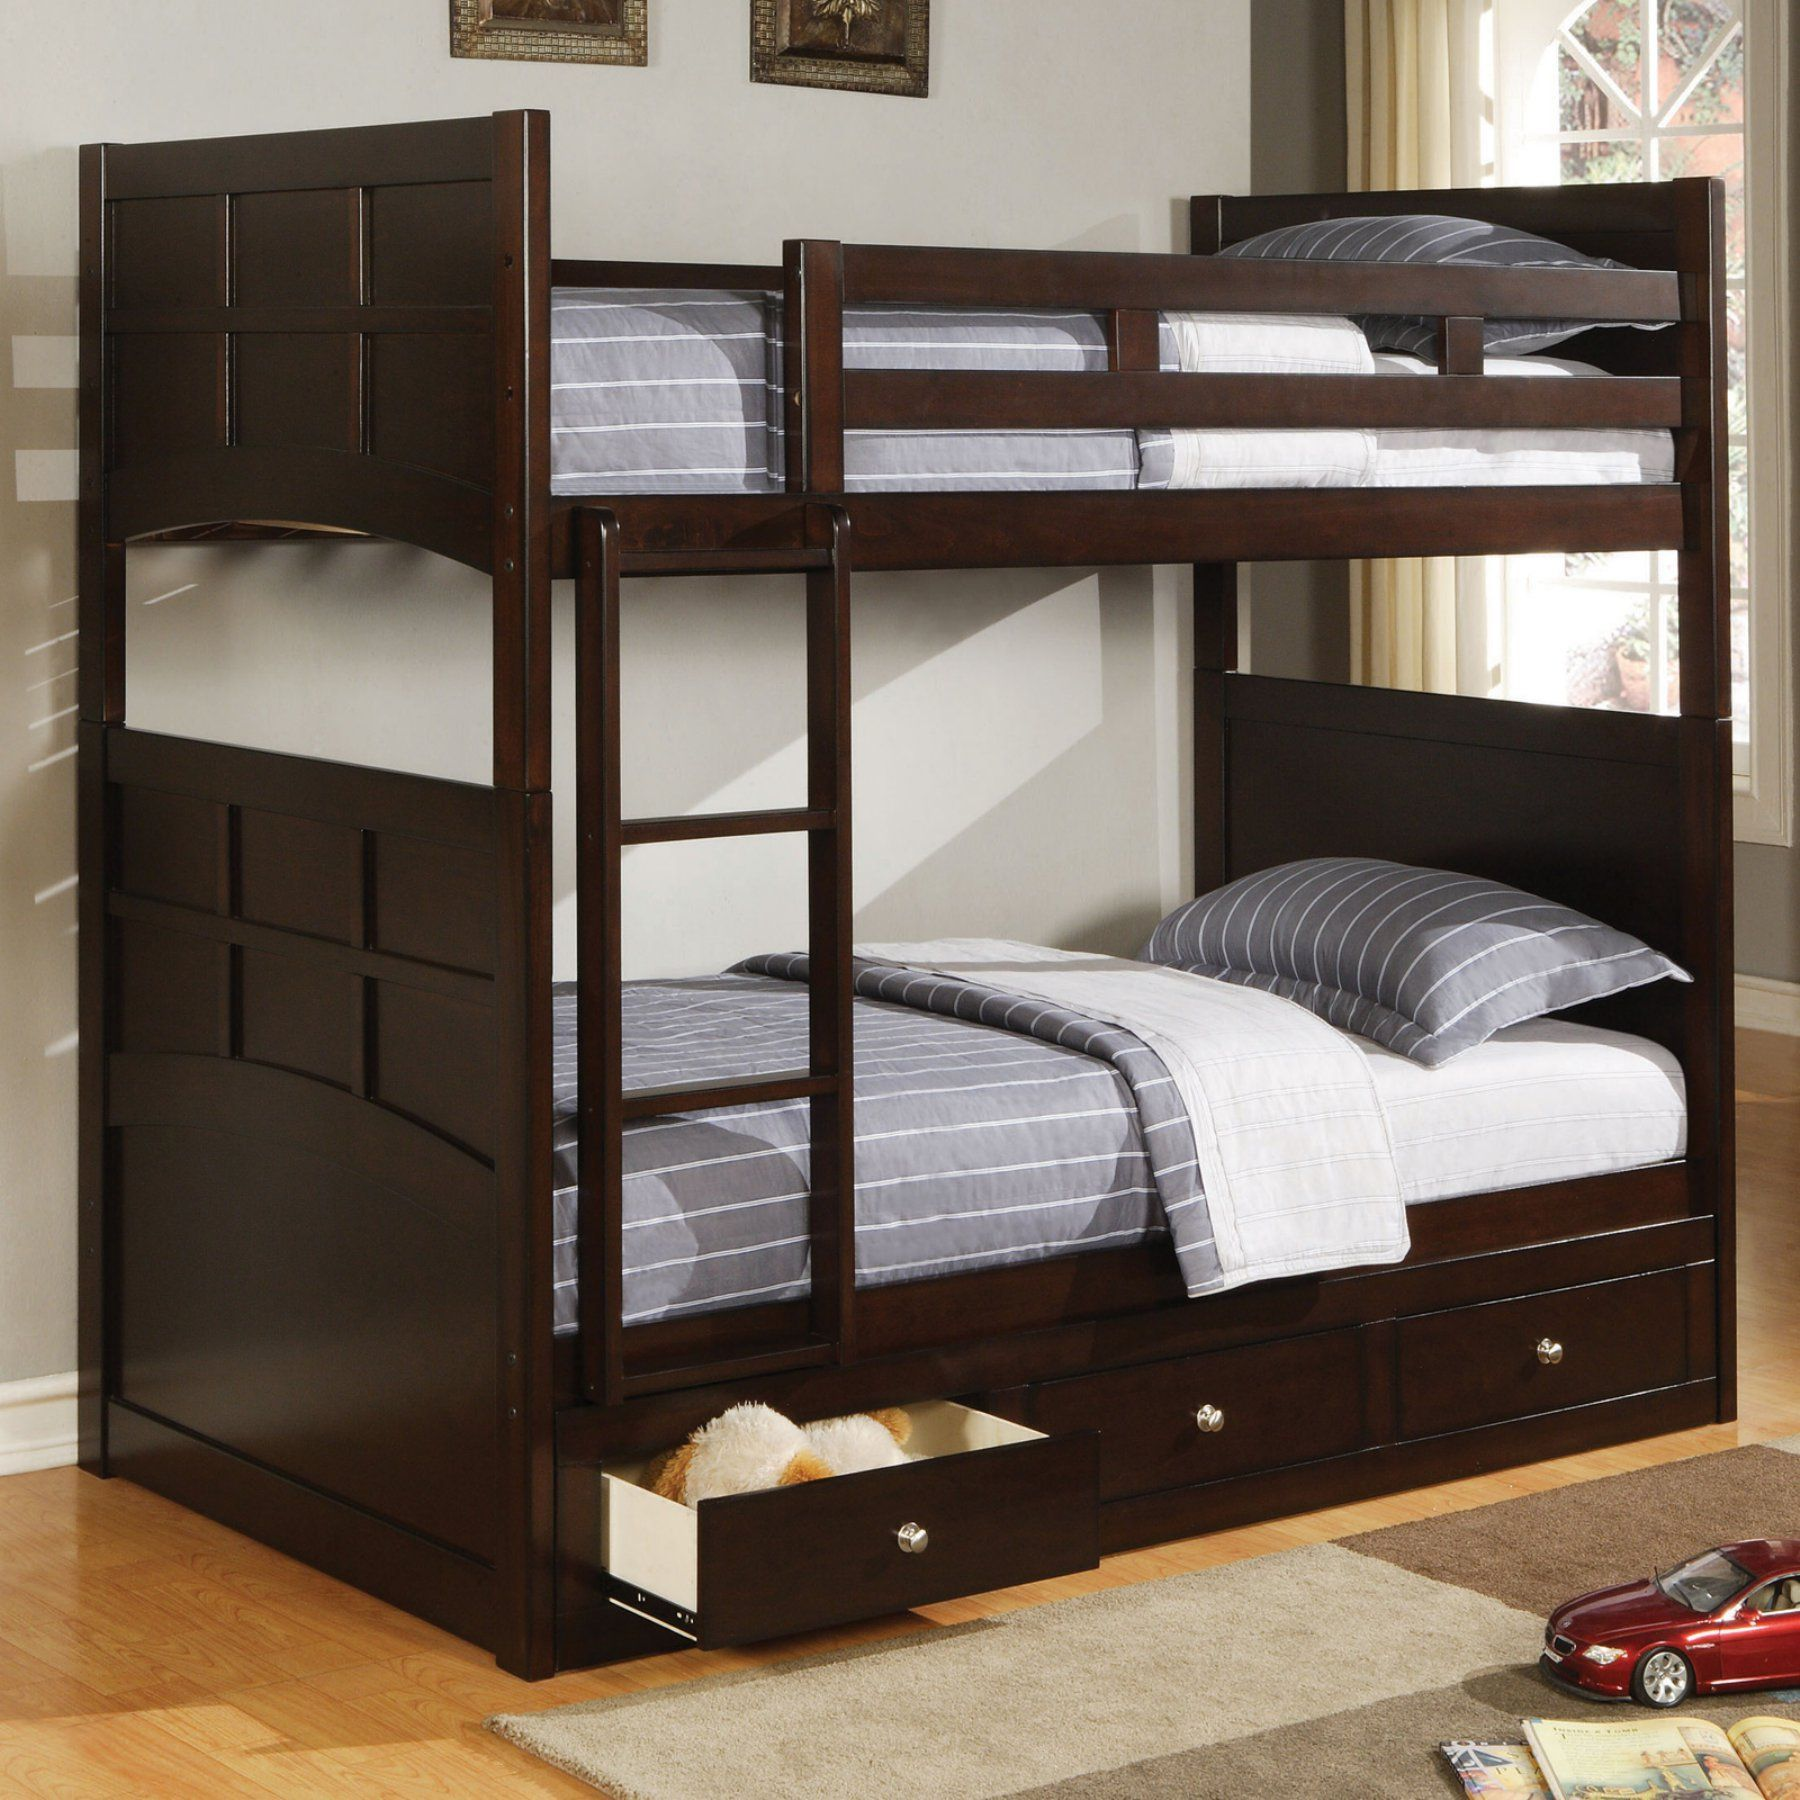 Coaster Furniture Jasper Twin Bunk Bed with Optional Three Drawer